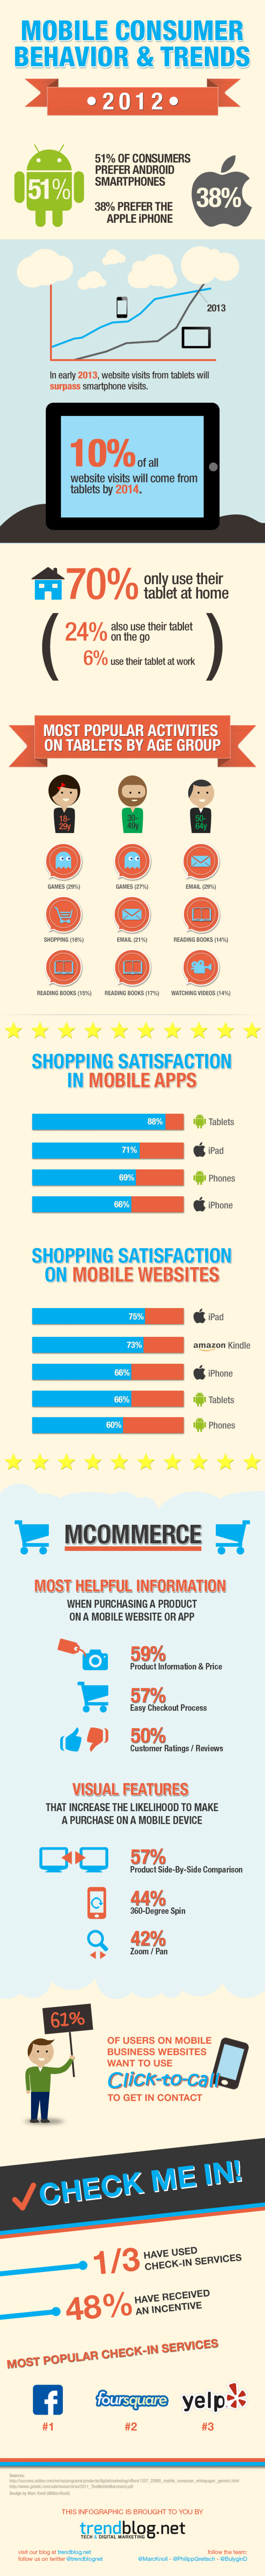 Mobile Consumer Behavior and Trends 2012 Infographic